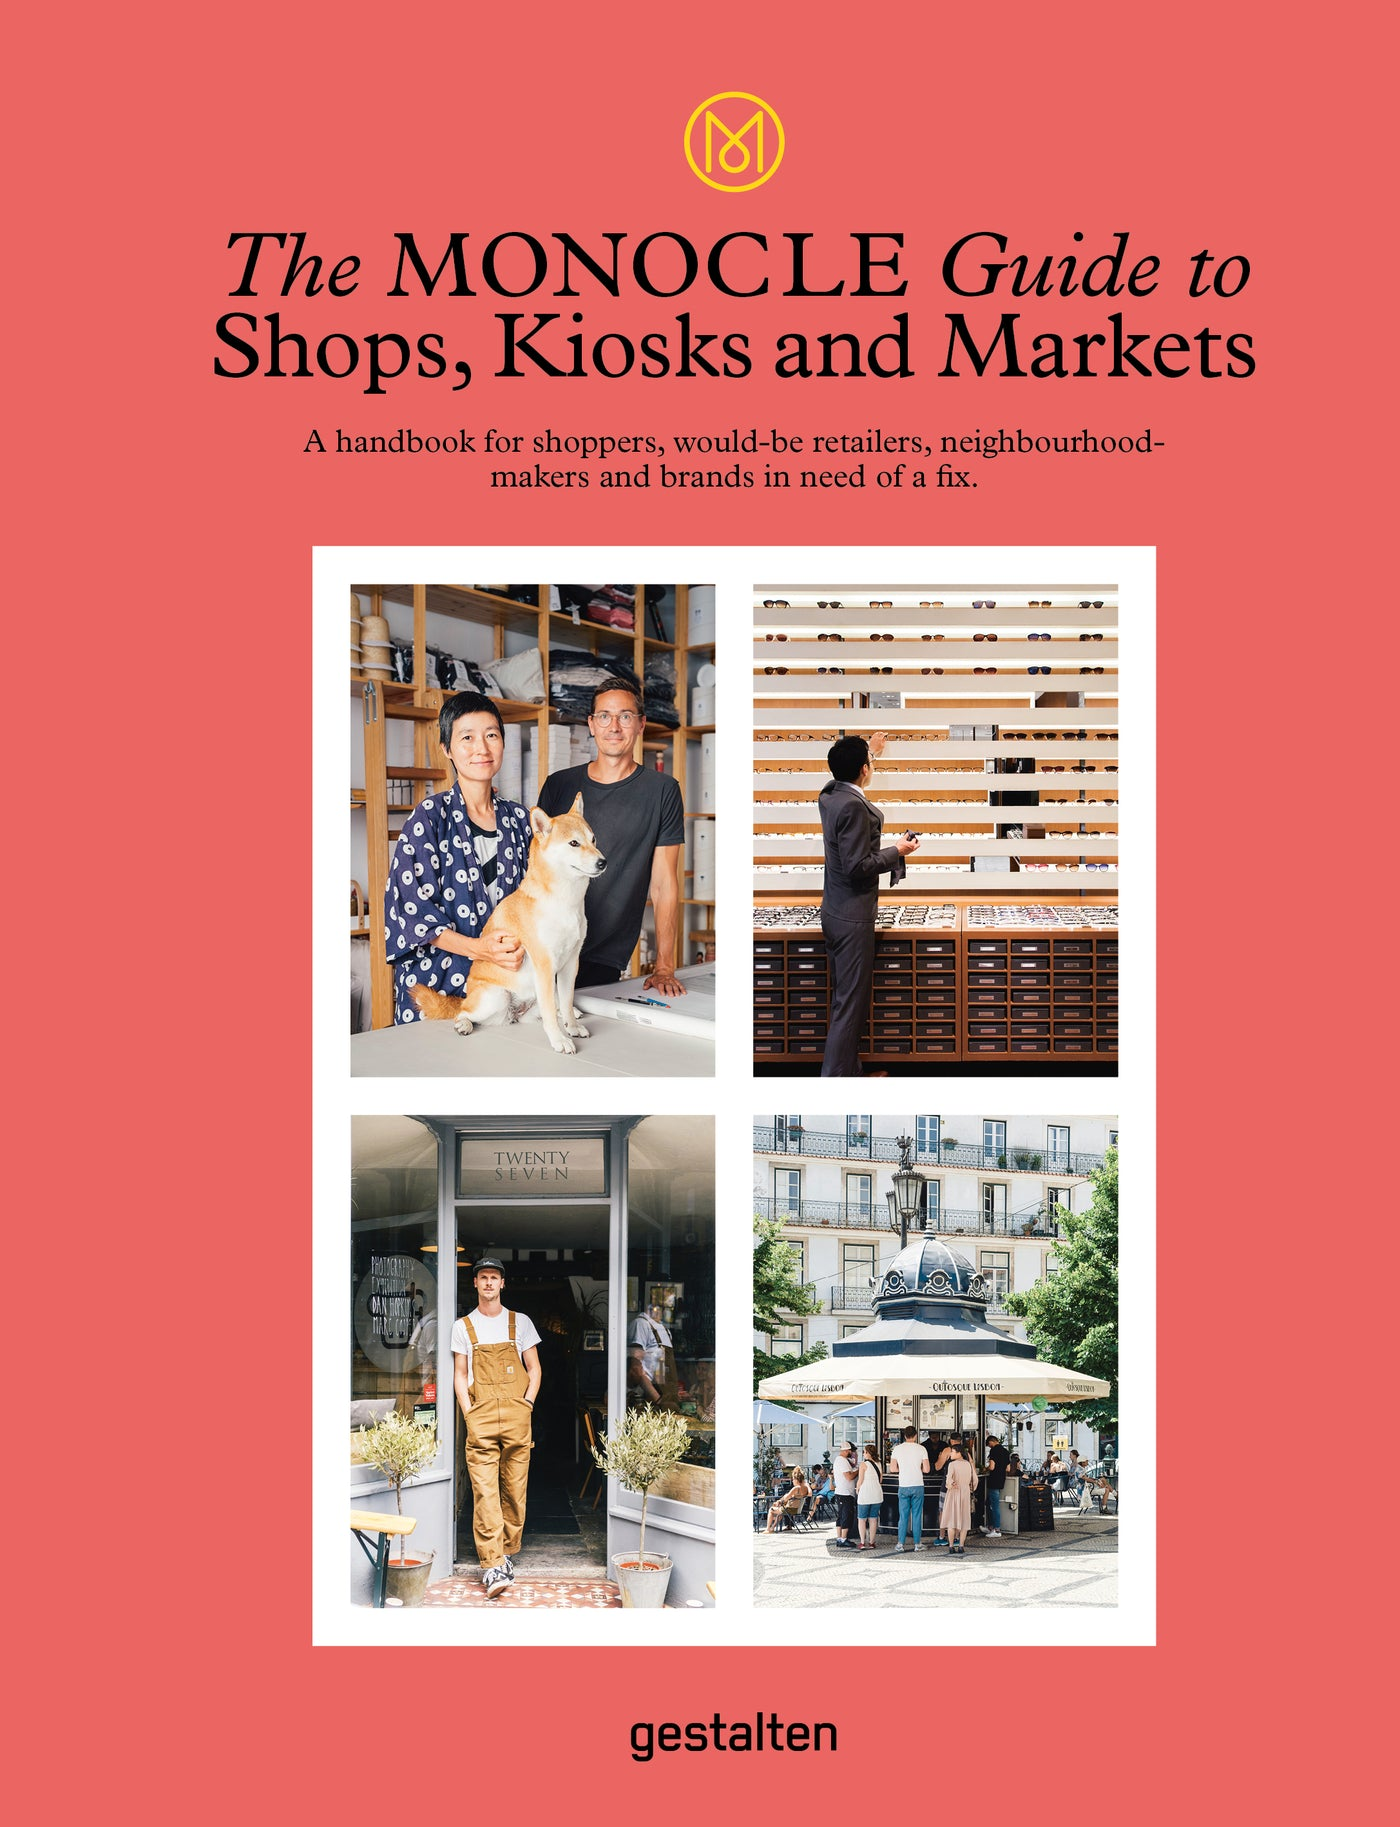 Gestalten - The Monocle Guide to Shops, Kiosks and Markets